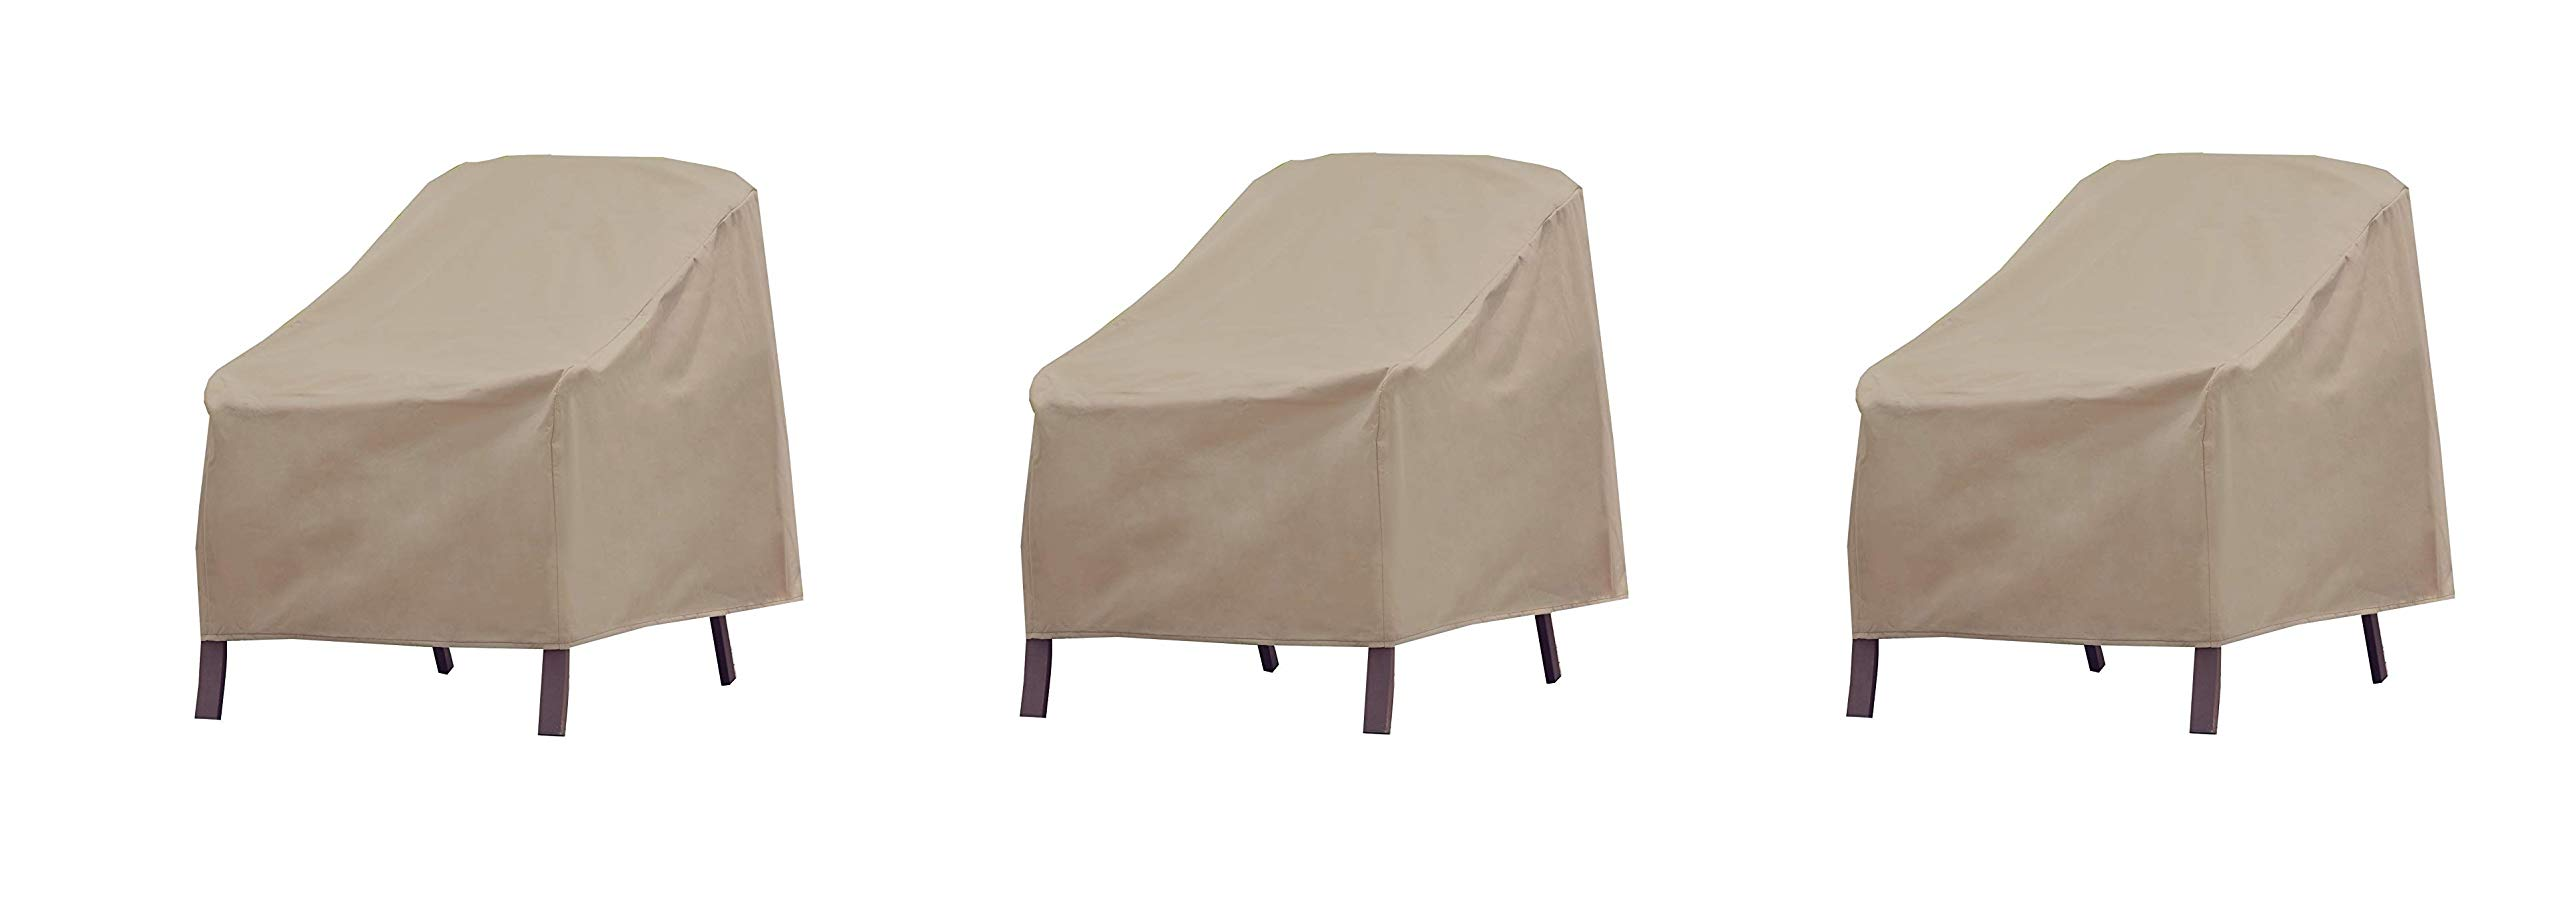 Modern Leisure Patio Furniture Chair Cover, Weather & Waterproof Patio Chair Cover (Pack of 3)